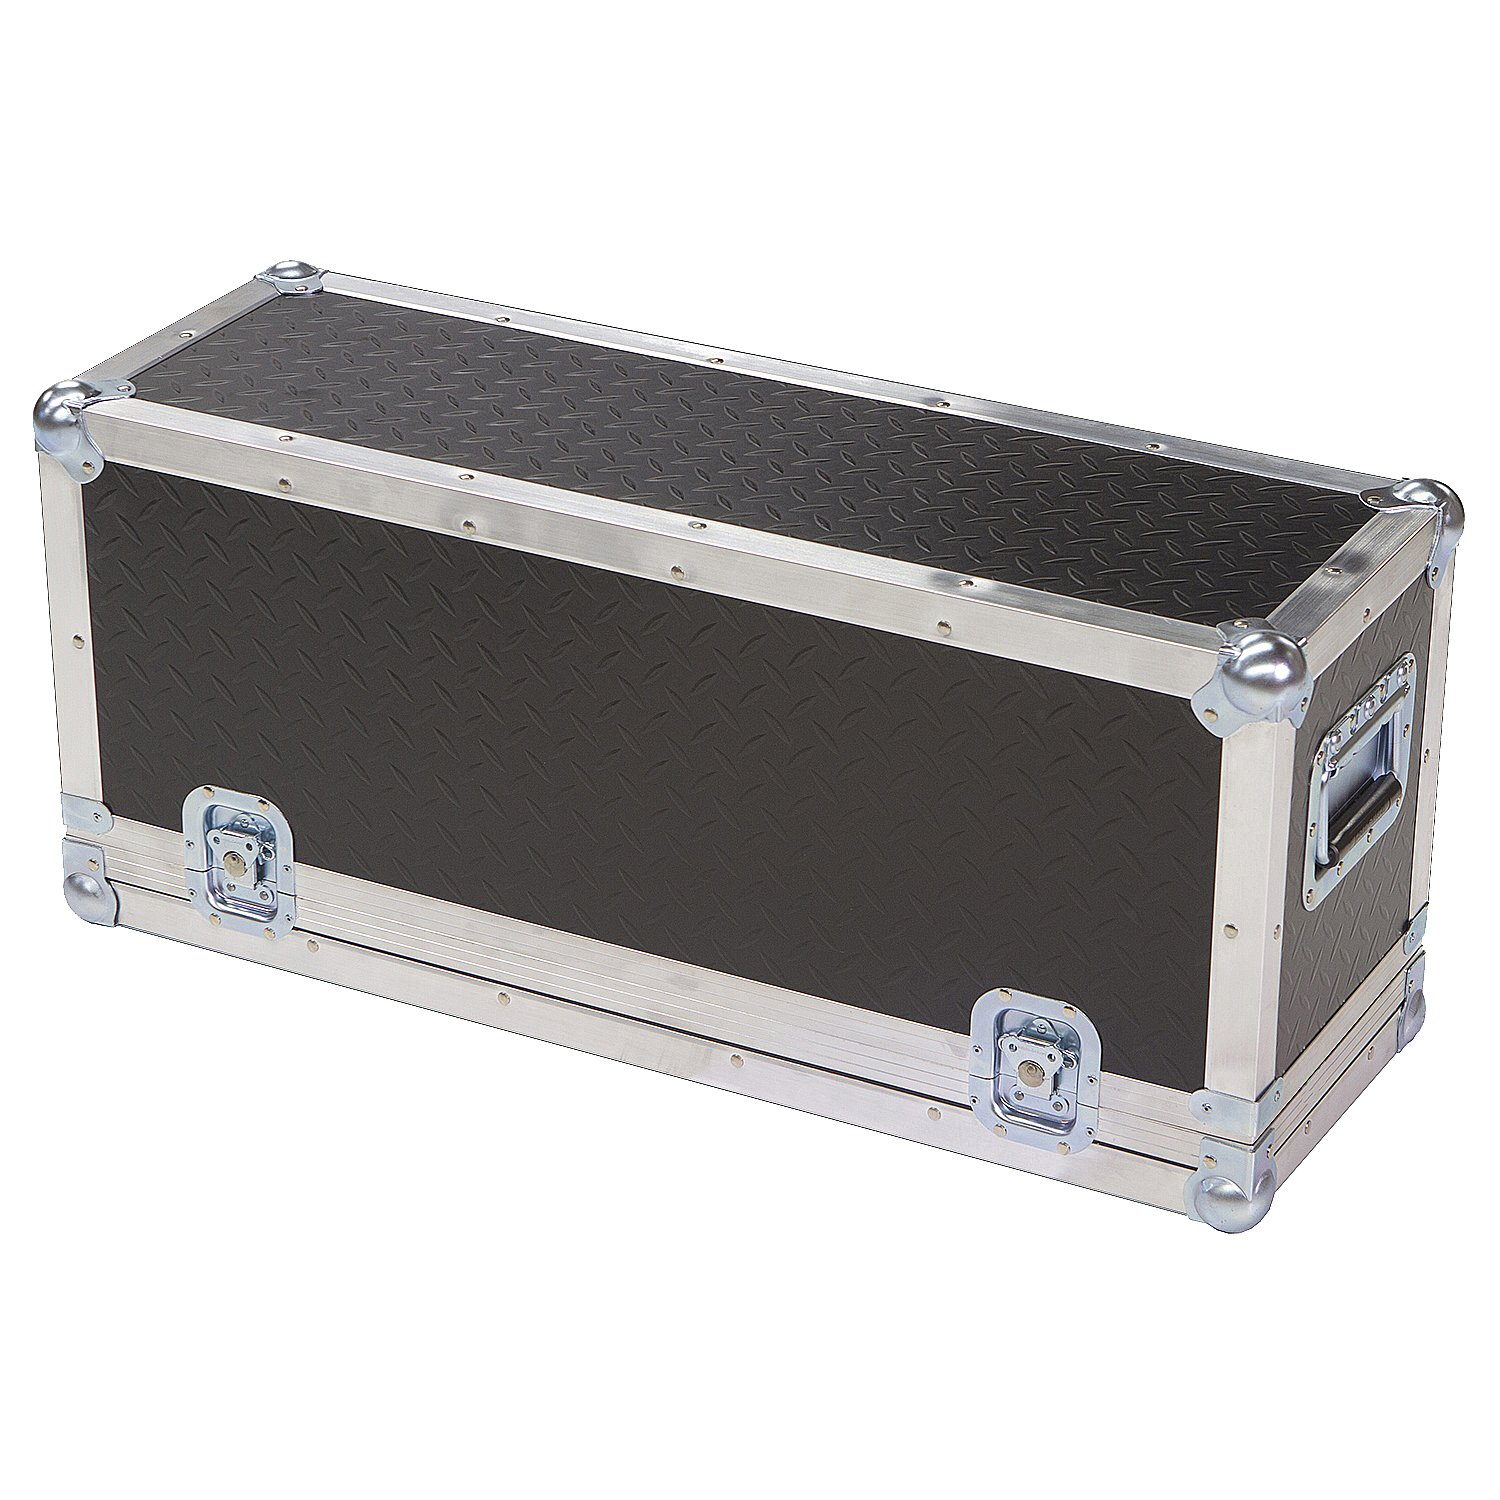 Head Amplifier 1/4 Ply ATA Light Duty Case with Diamond Plate Laminate Fits Ampeg V-4b (New Version 2013)